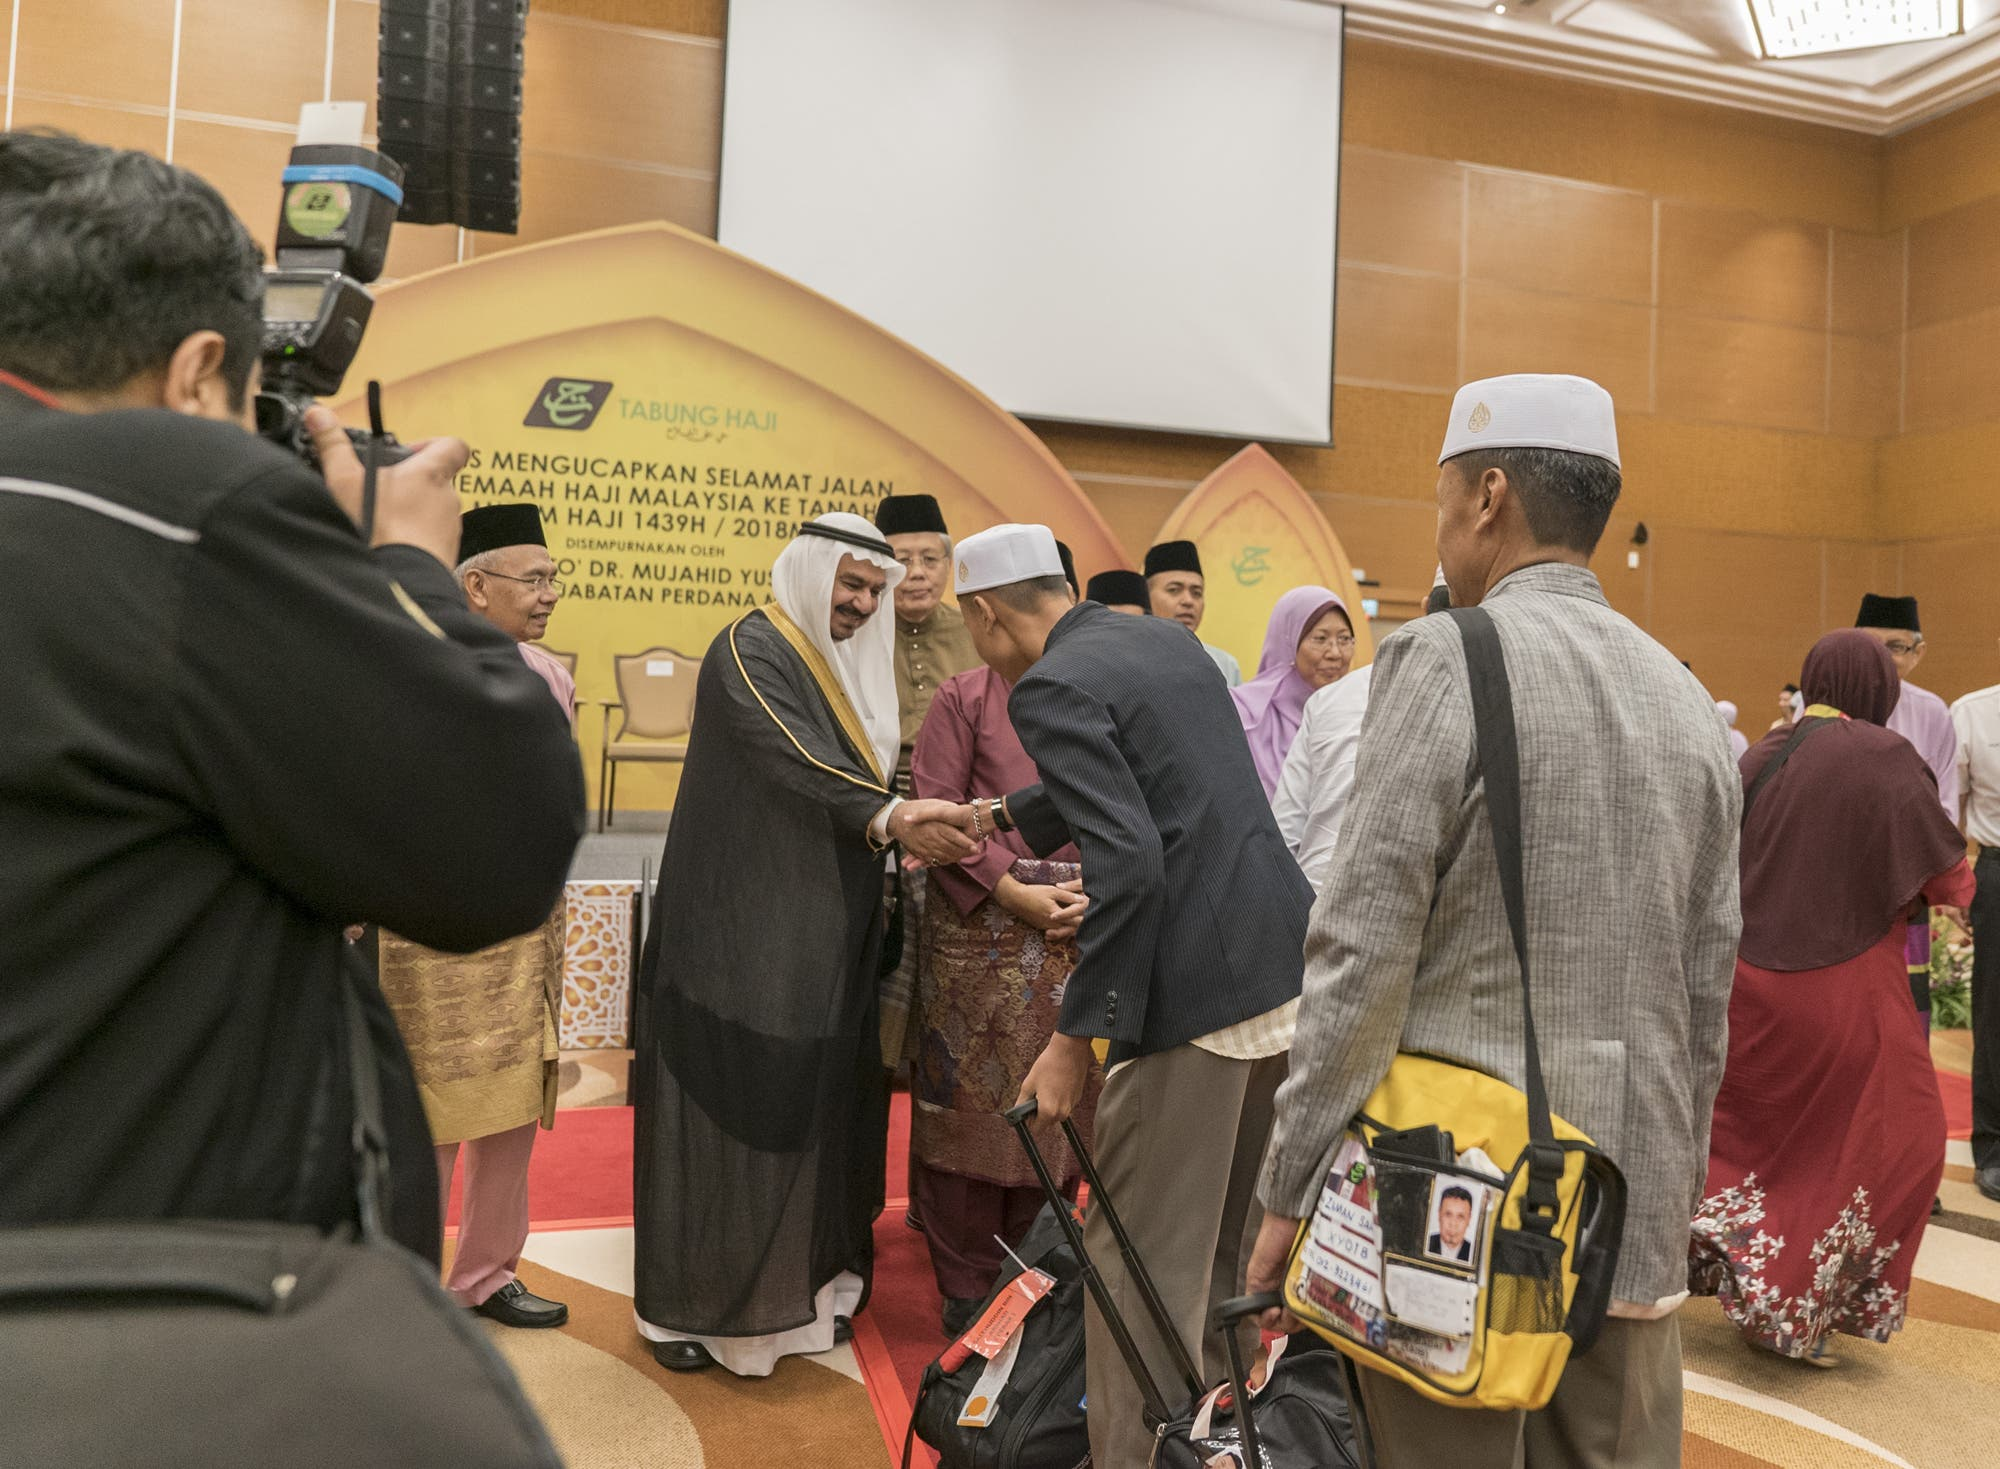 The Makkah Road Initiative has been official launched by commissioning the first two flights of pilgrims from Kuala Lumpur International Airport.